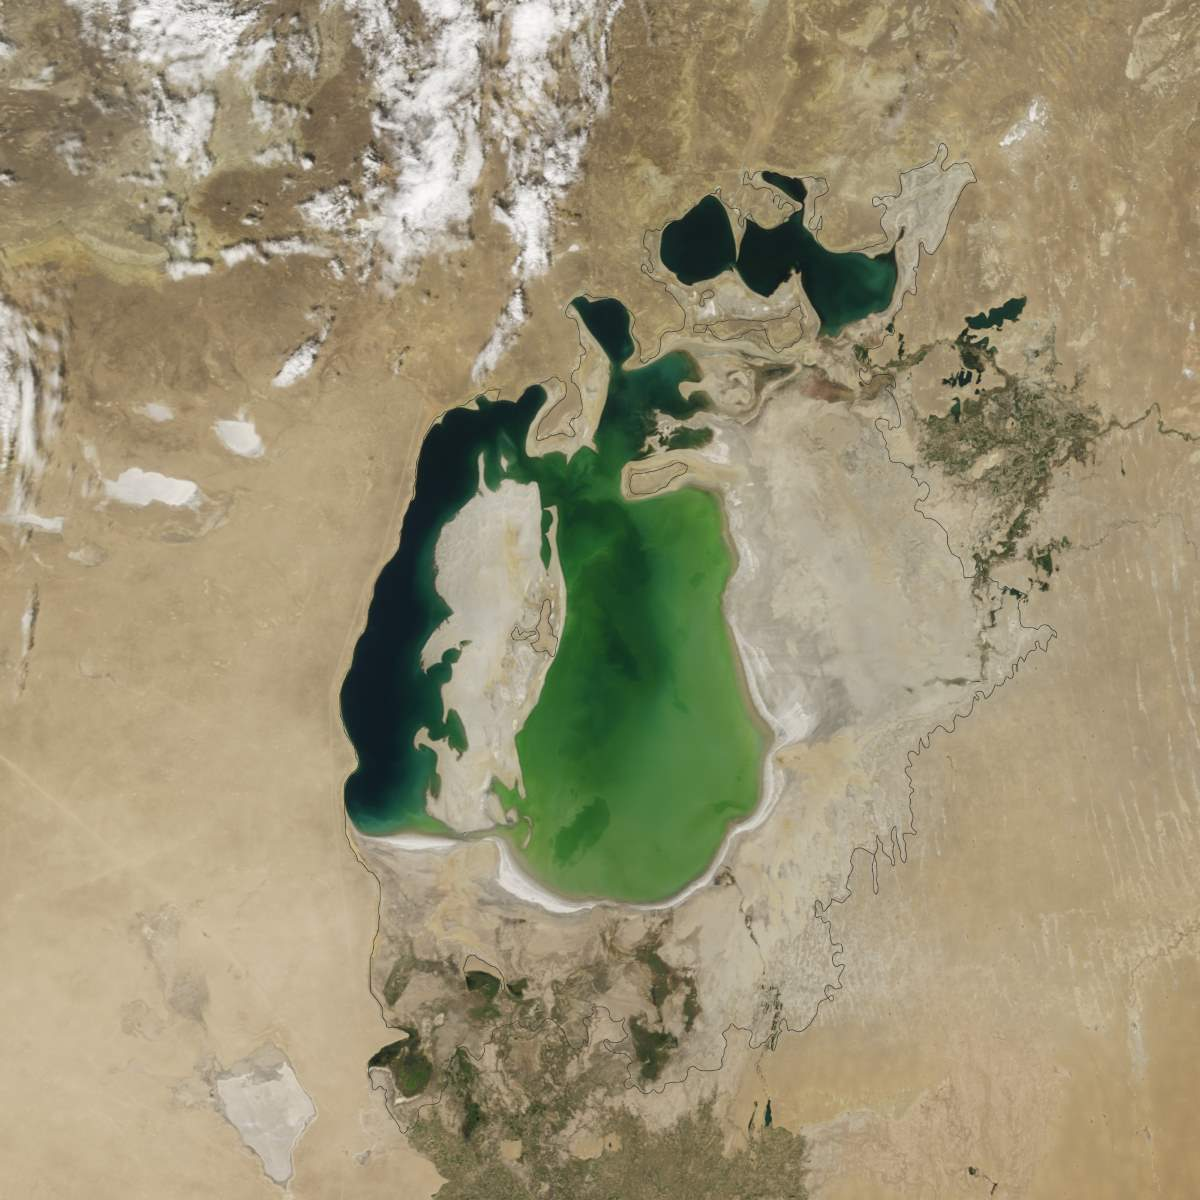 Changing Earth: Aral Sea, August 25, 2000